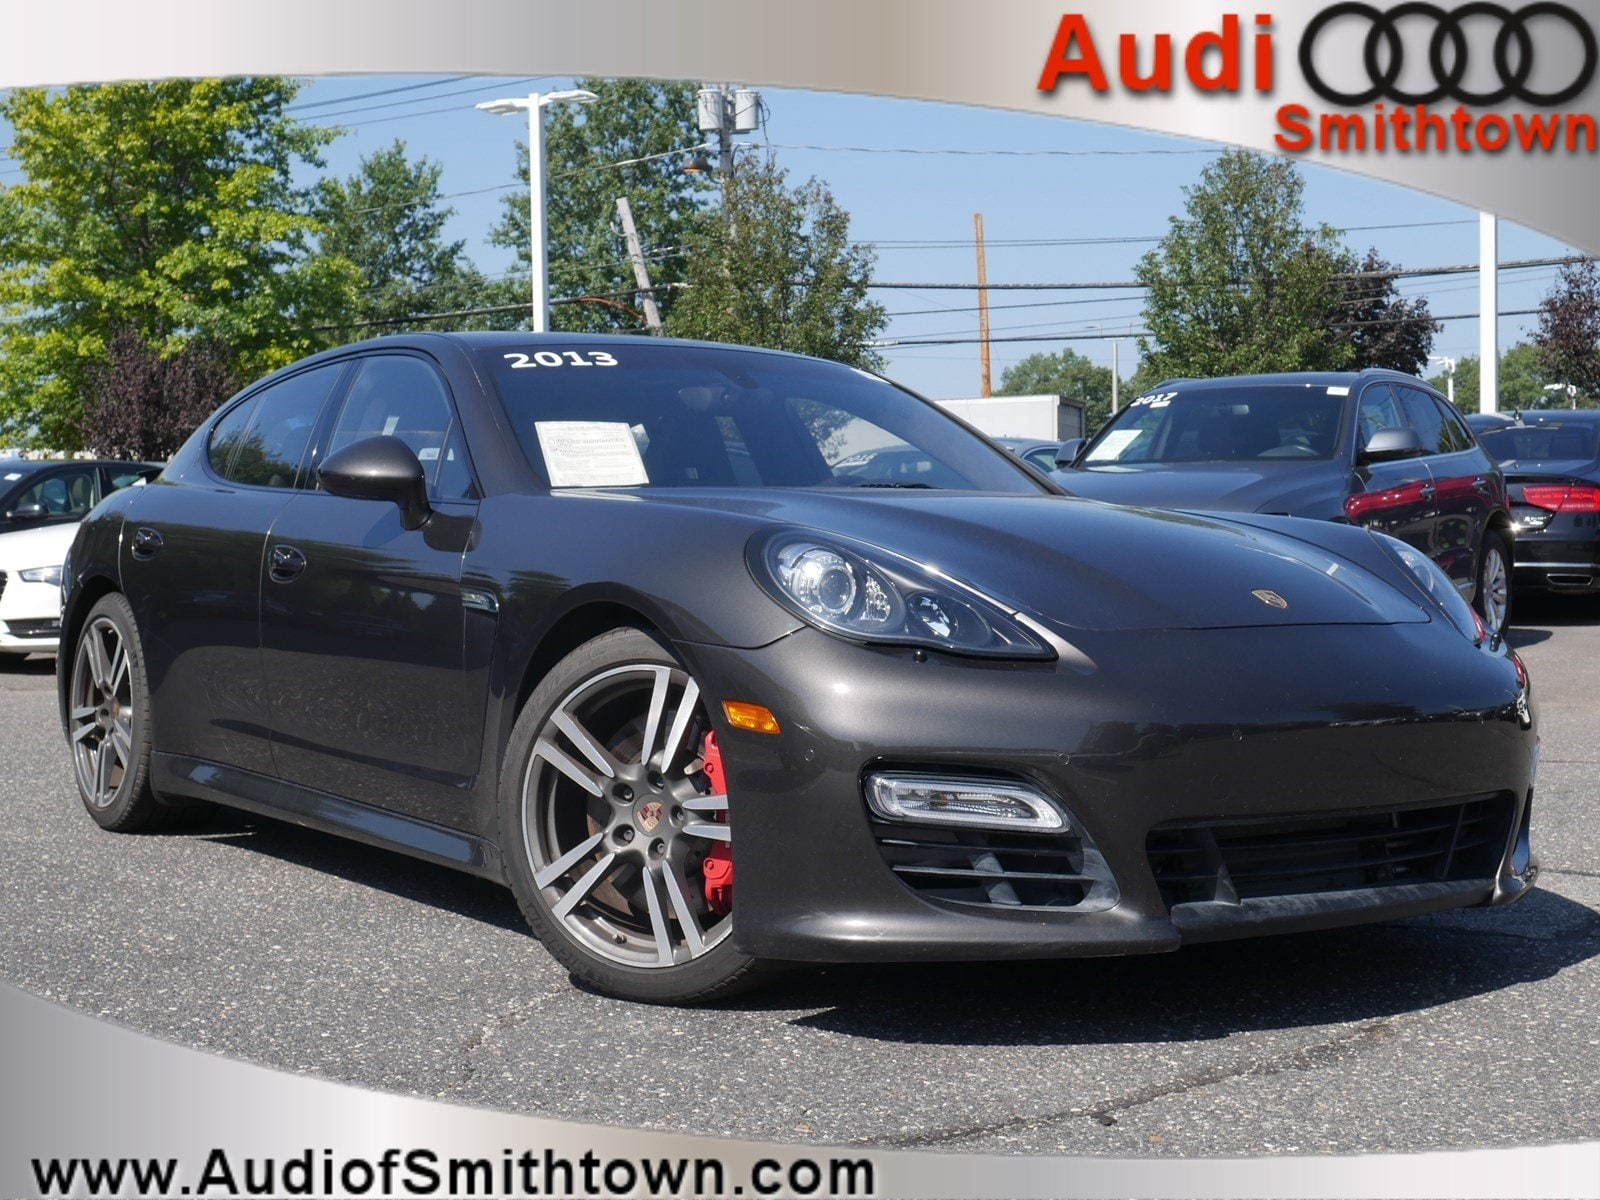 New & Used Audi Vehicles For Sale in Long Island NY Audi